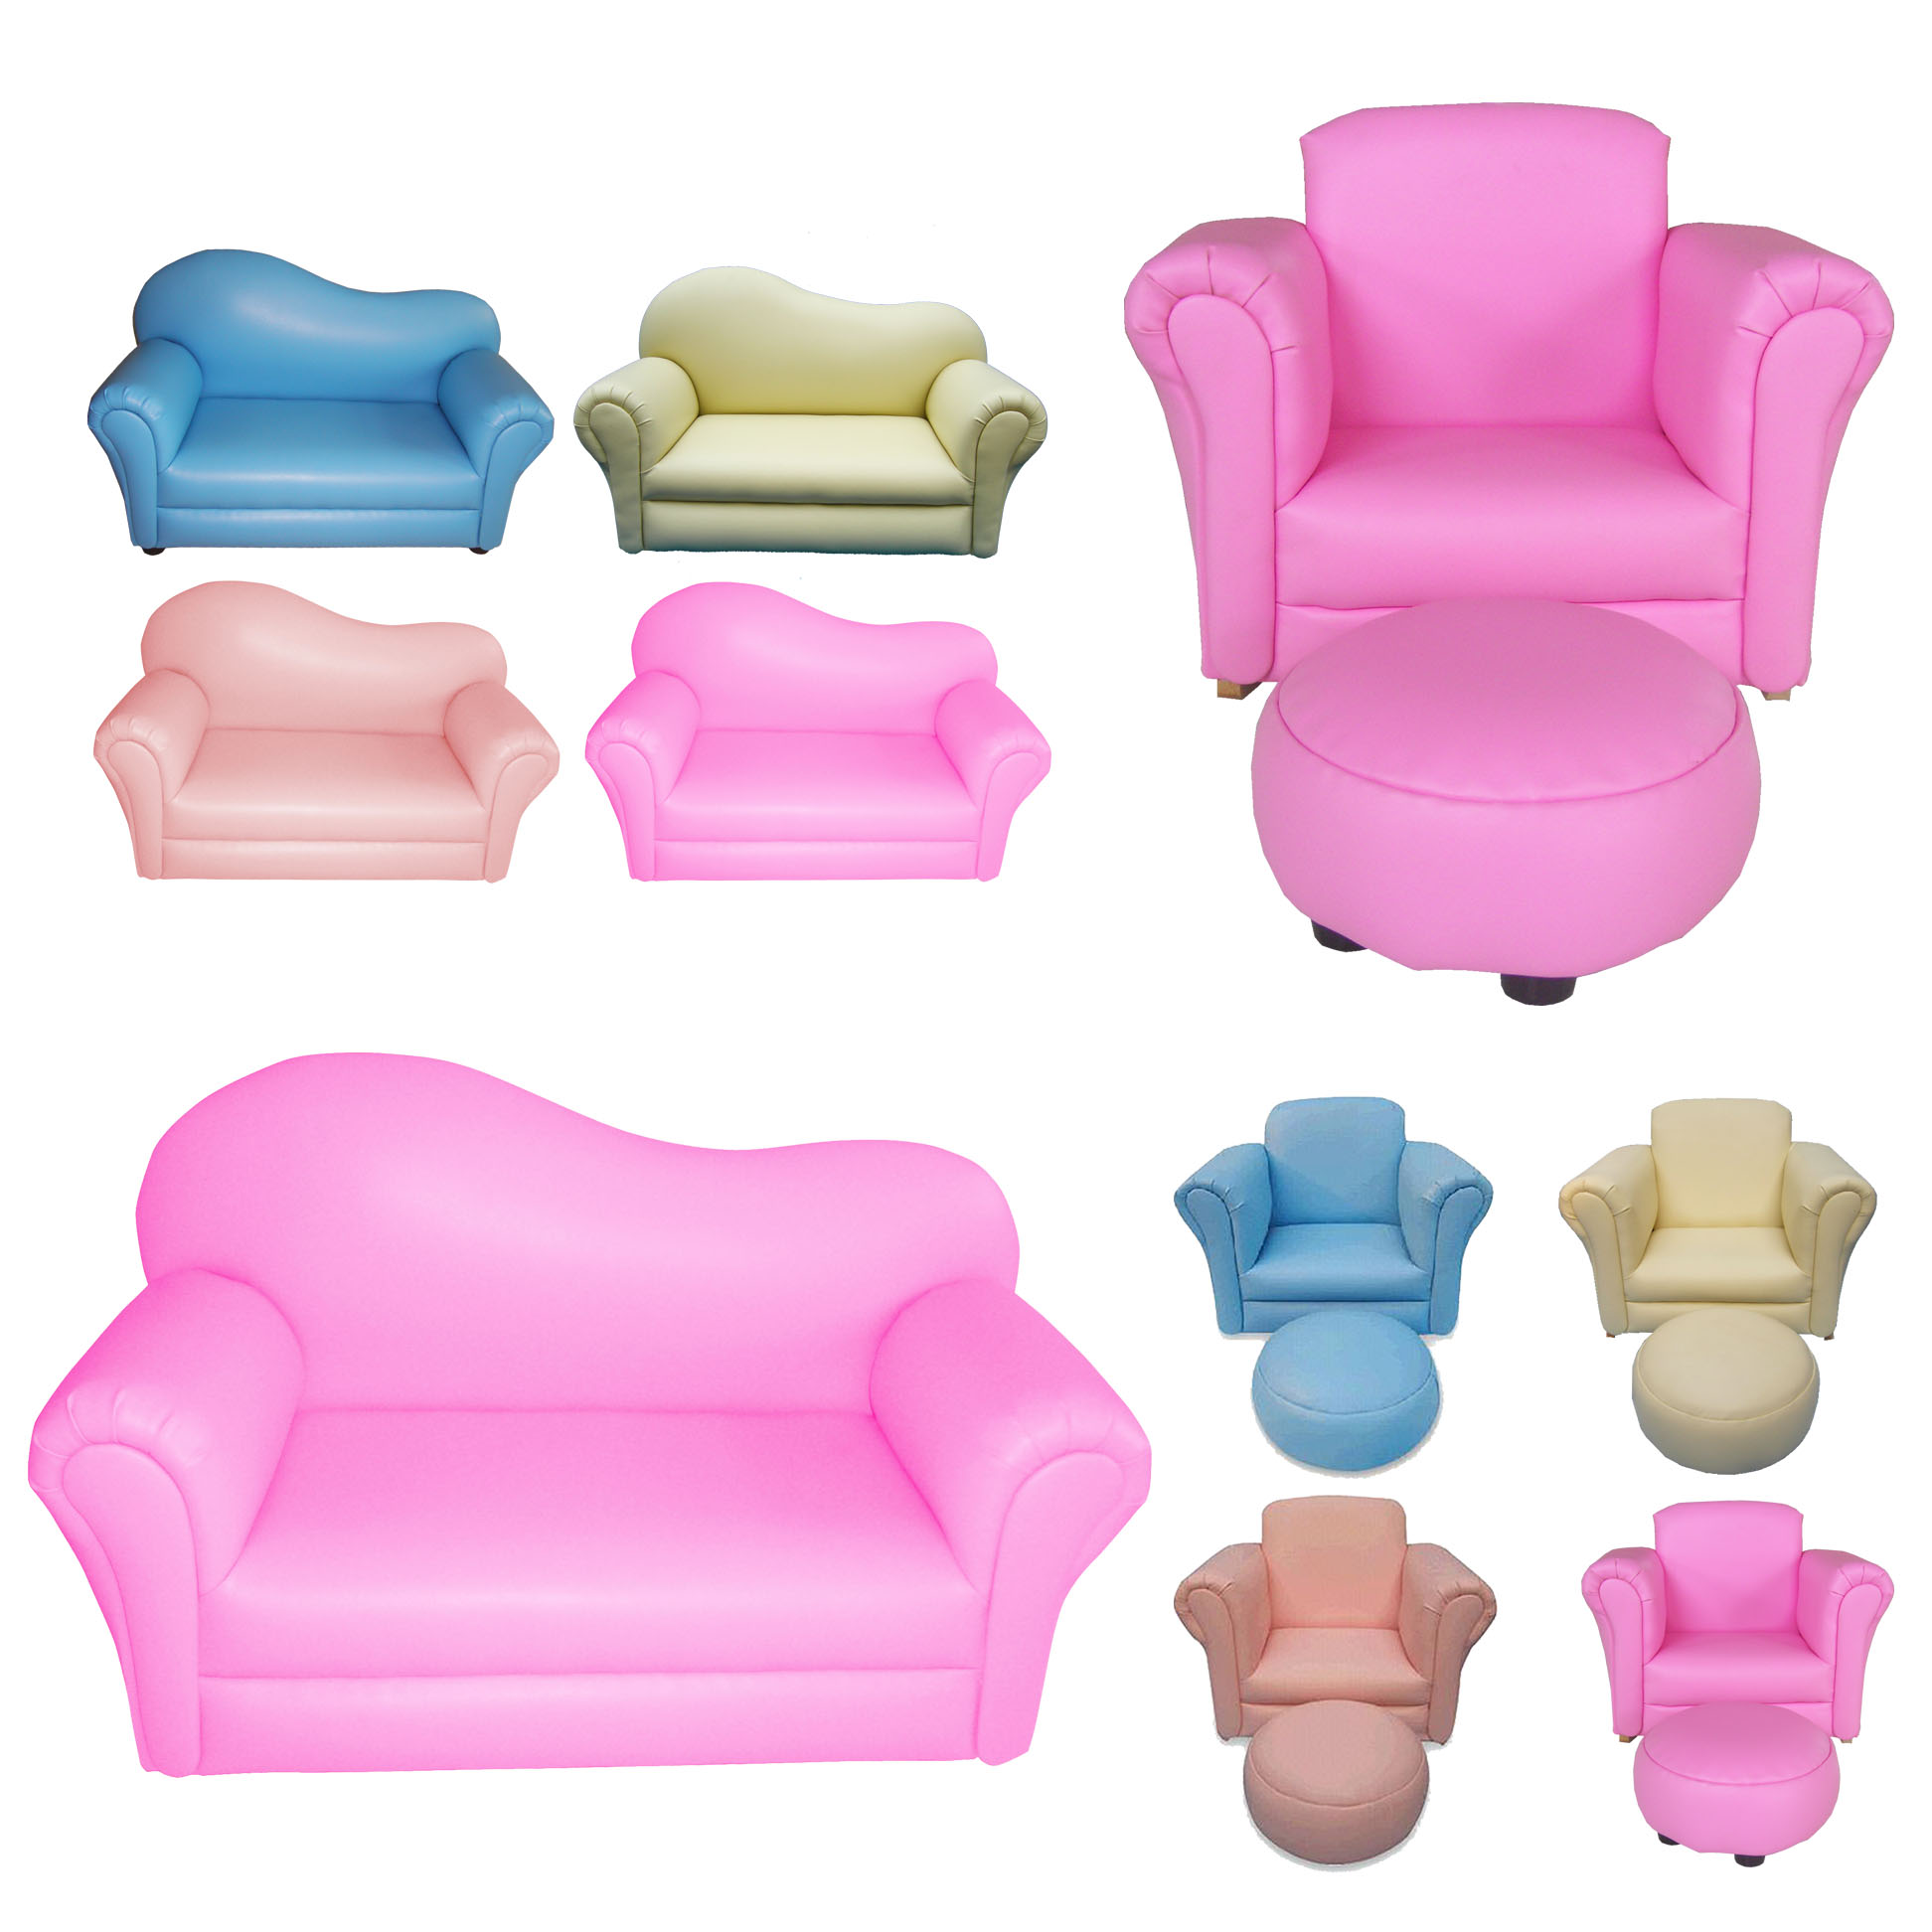 Toddler Couch Chair Chair Clipart Child Chair Chair Child Chair Transparent Free For